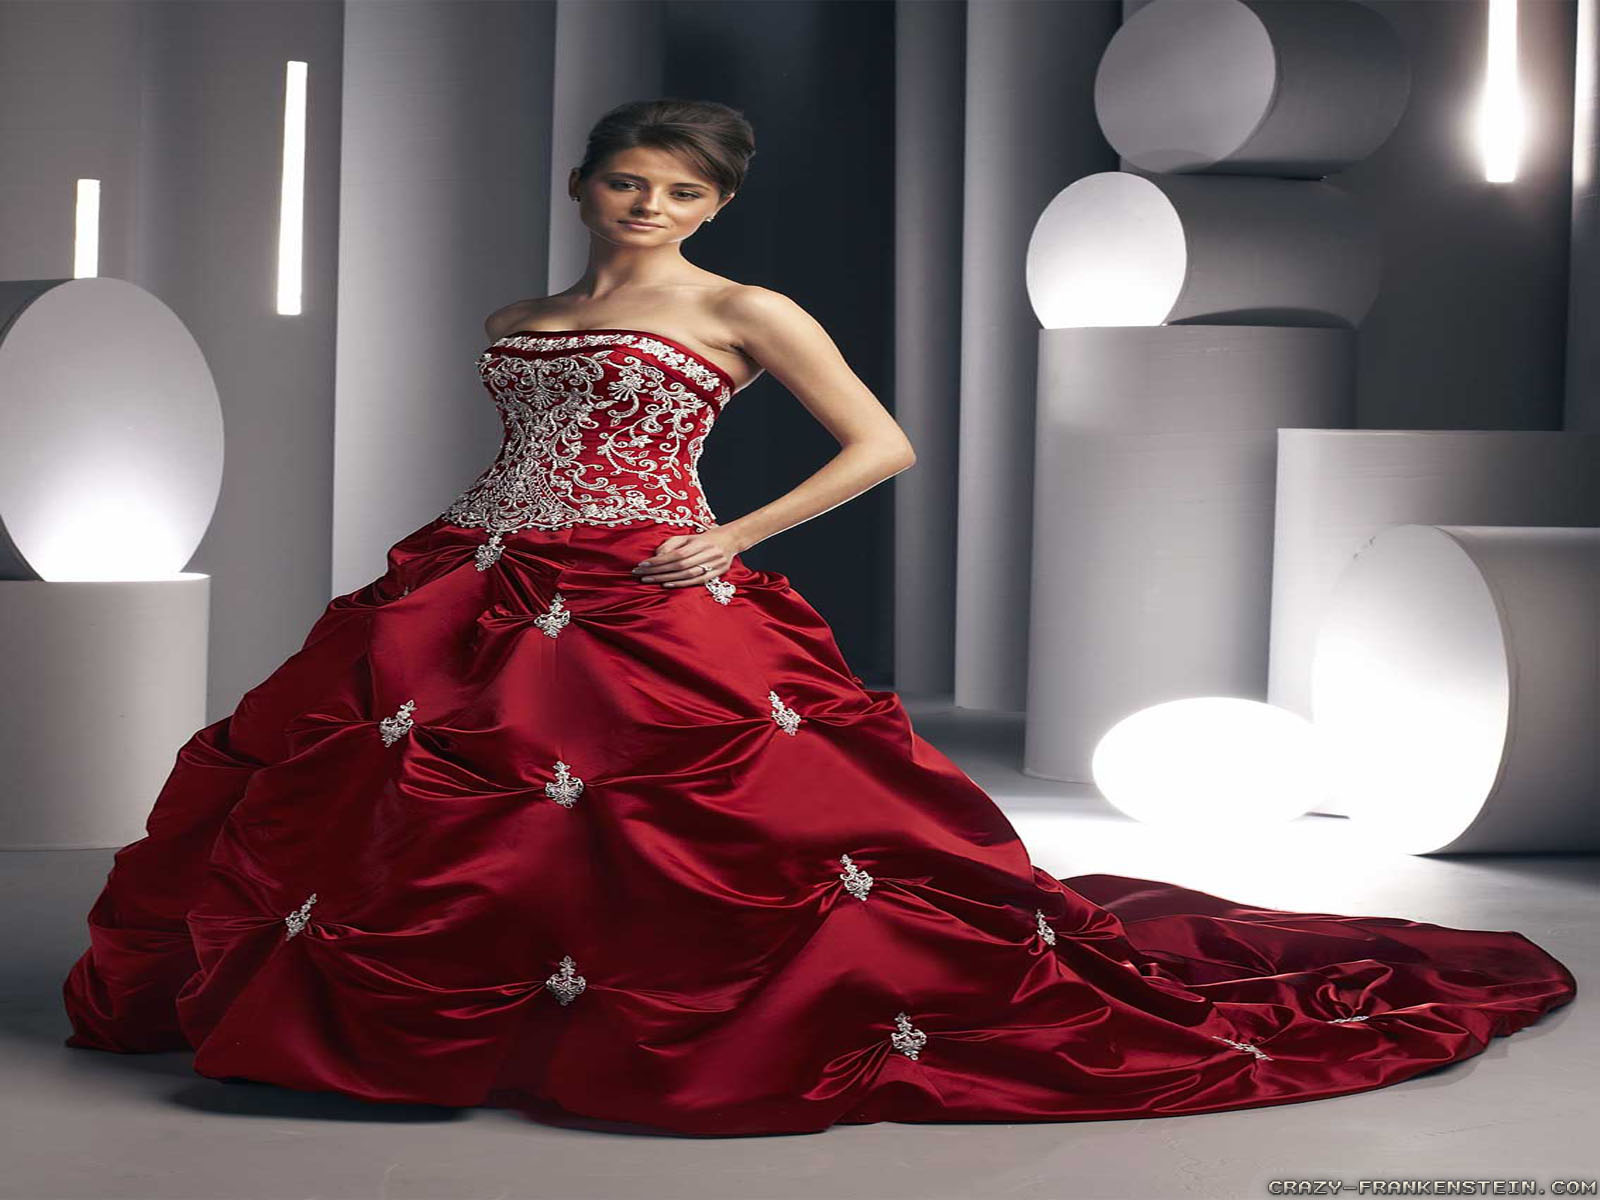 Fashion Dresses Wallpapers